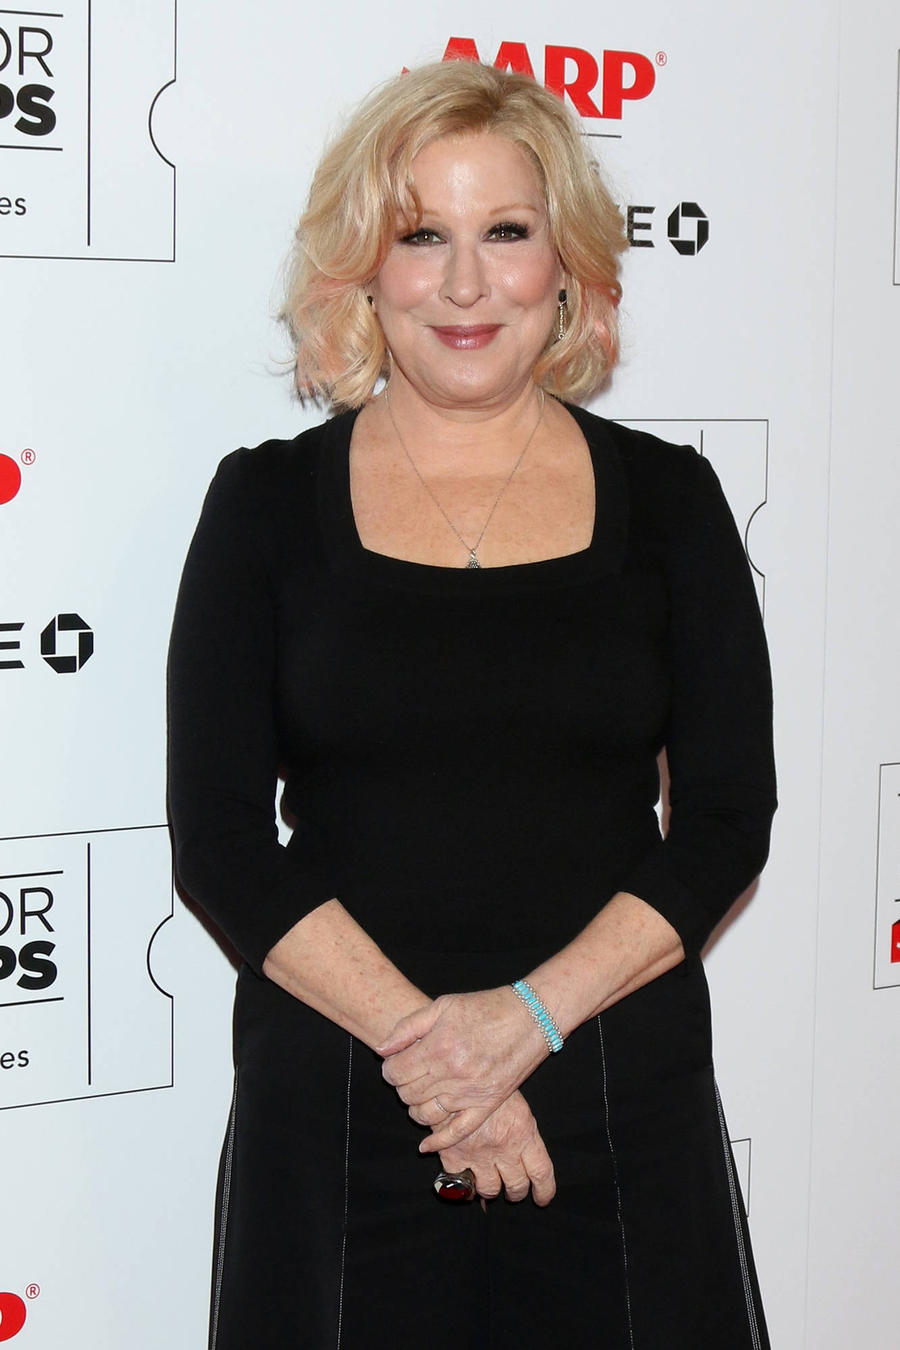 Bette Midler's Kim Kardashian Chicken Clucks No More